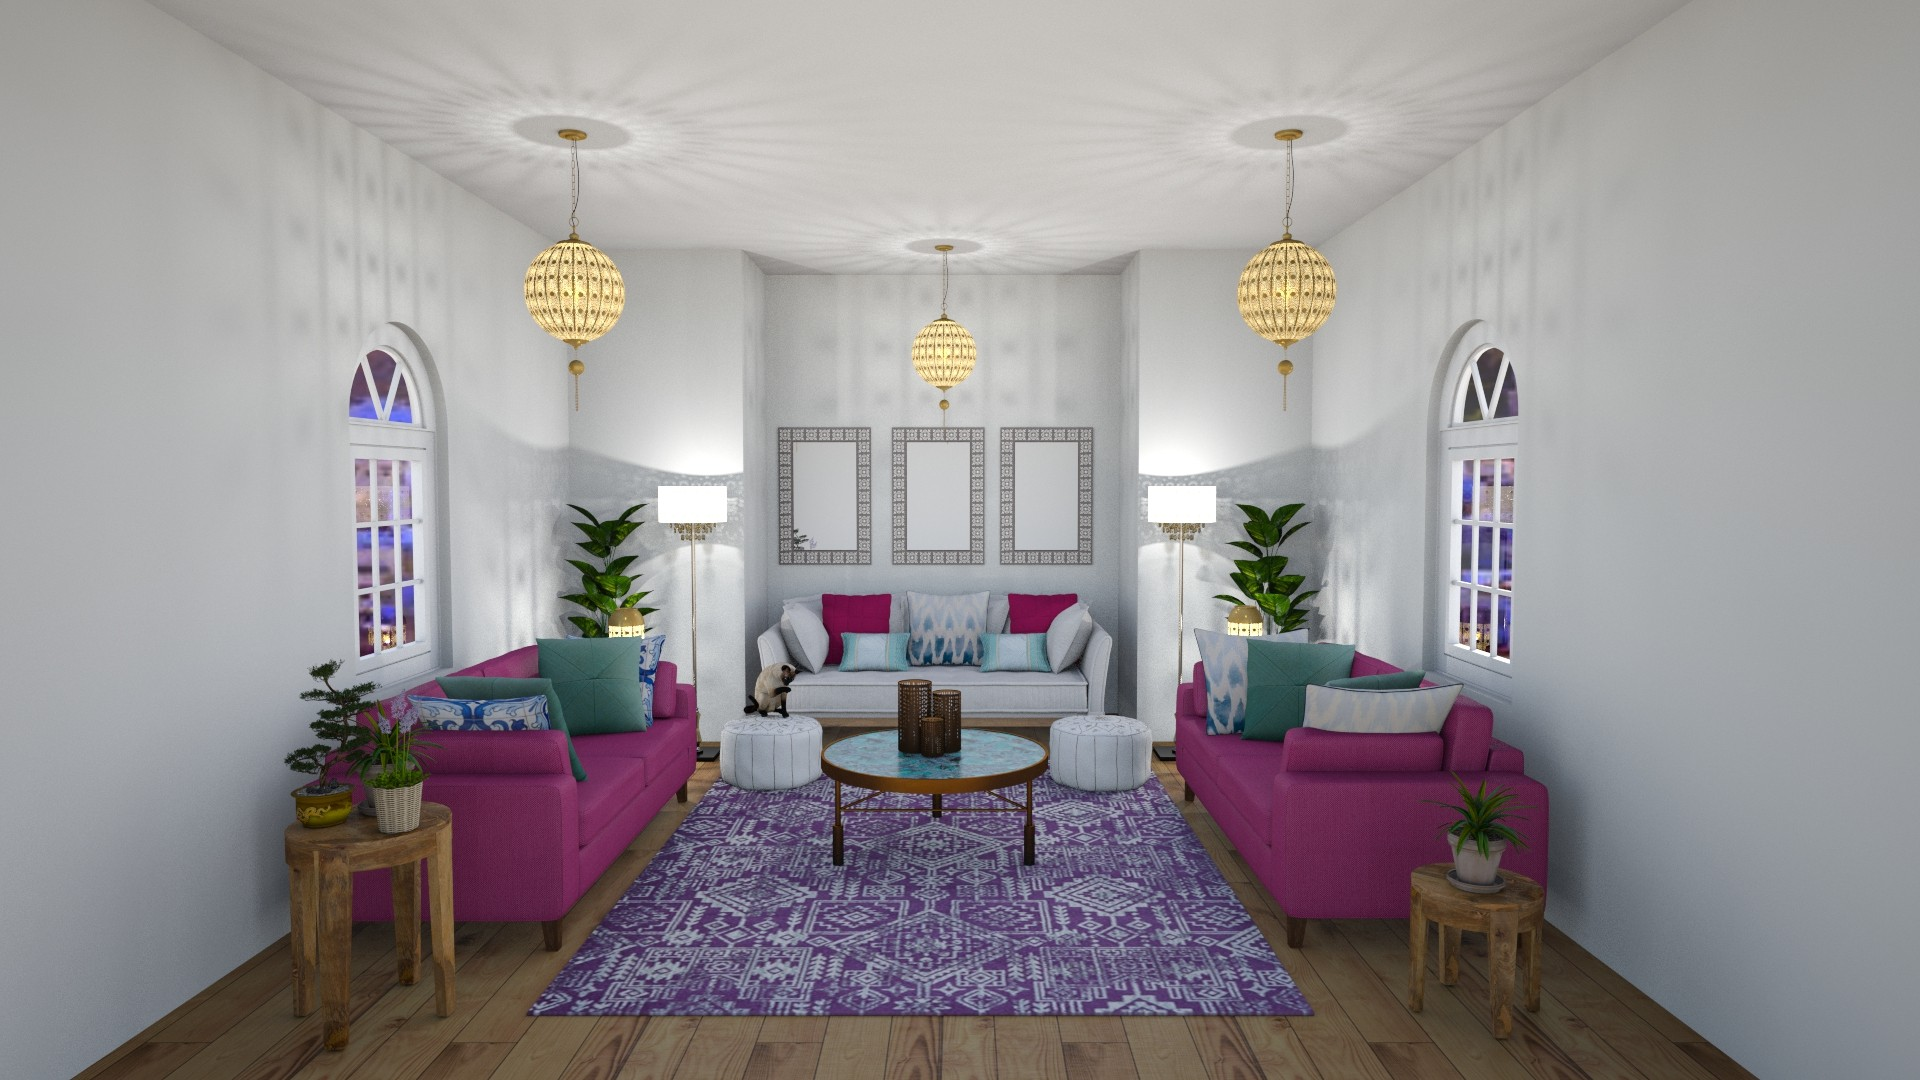 Bohemian Style with Moroccan influences.